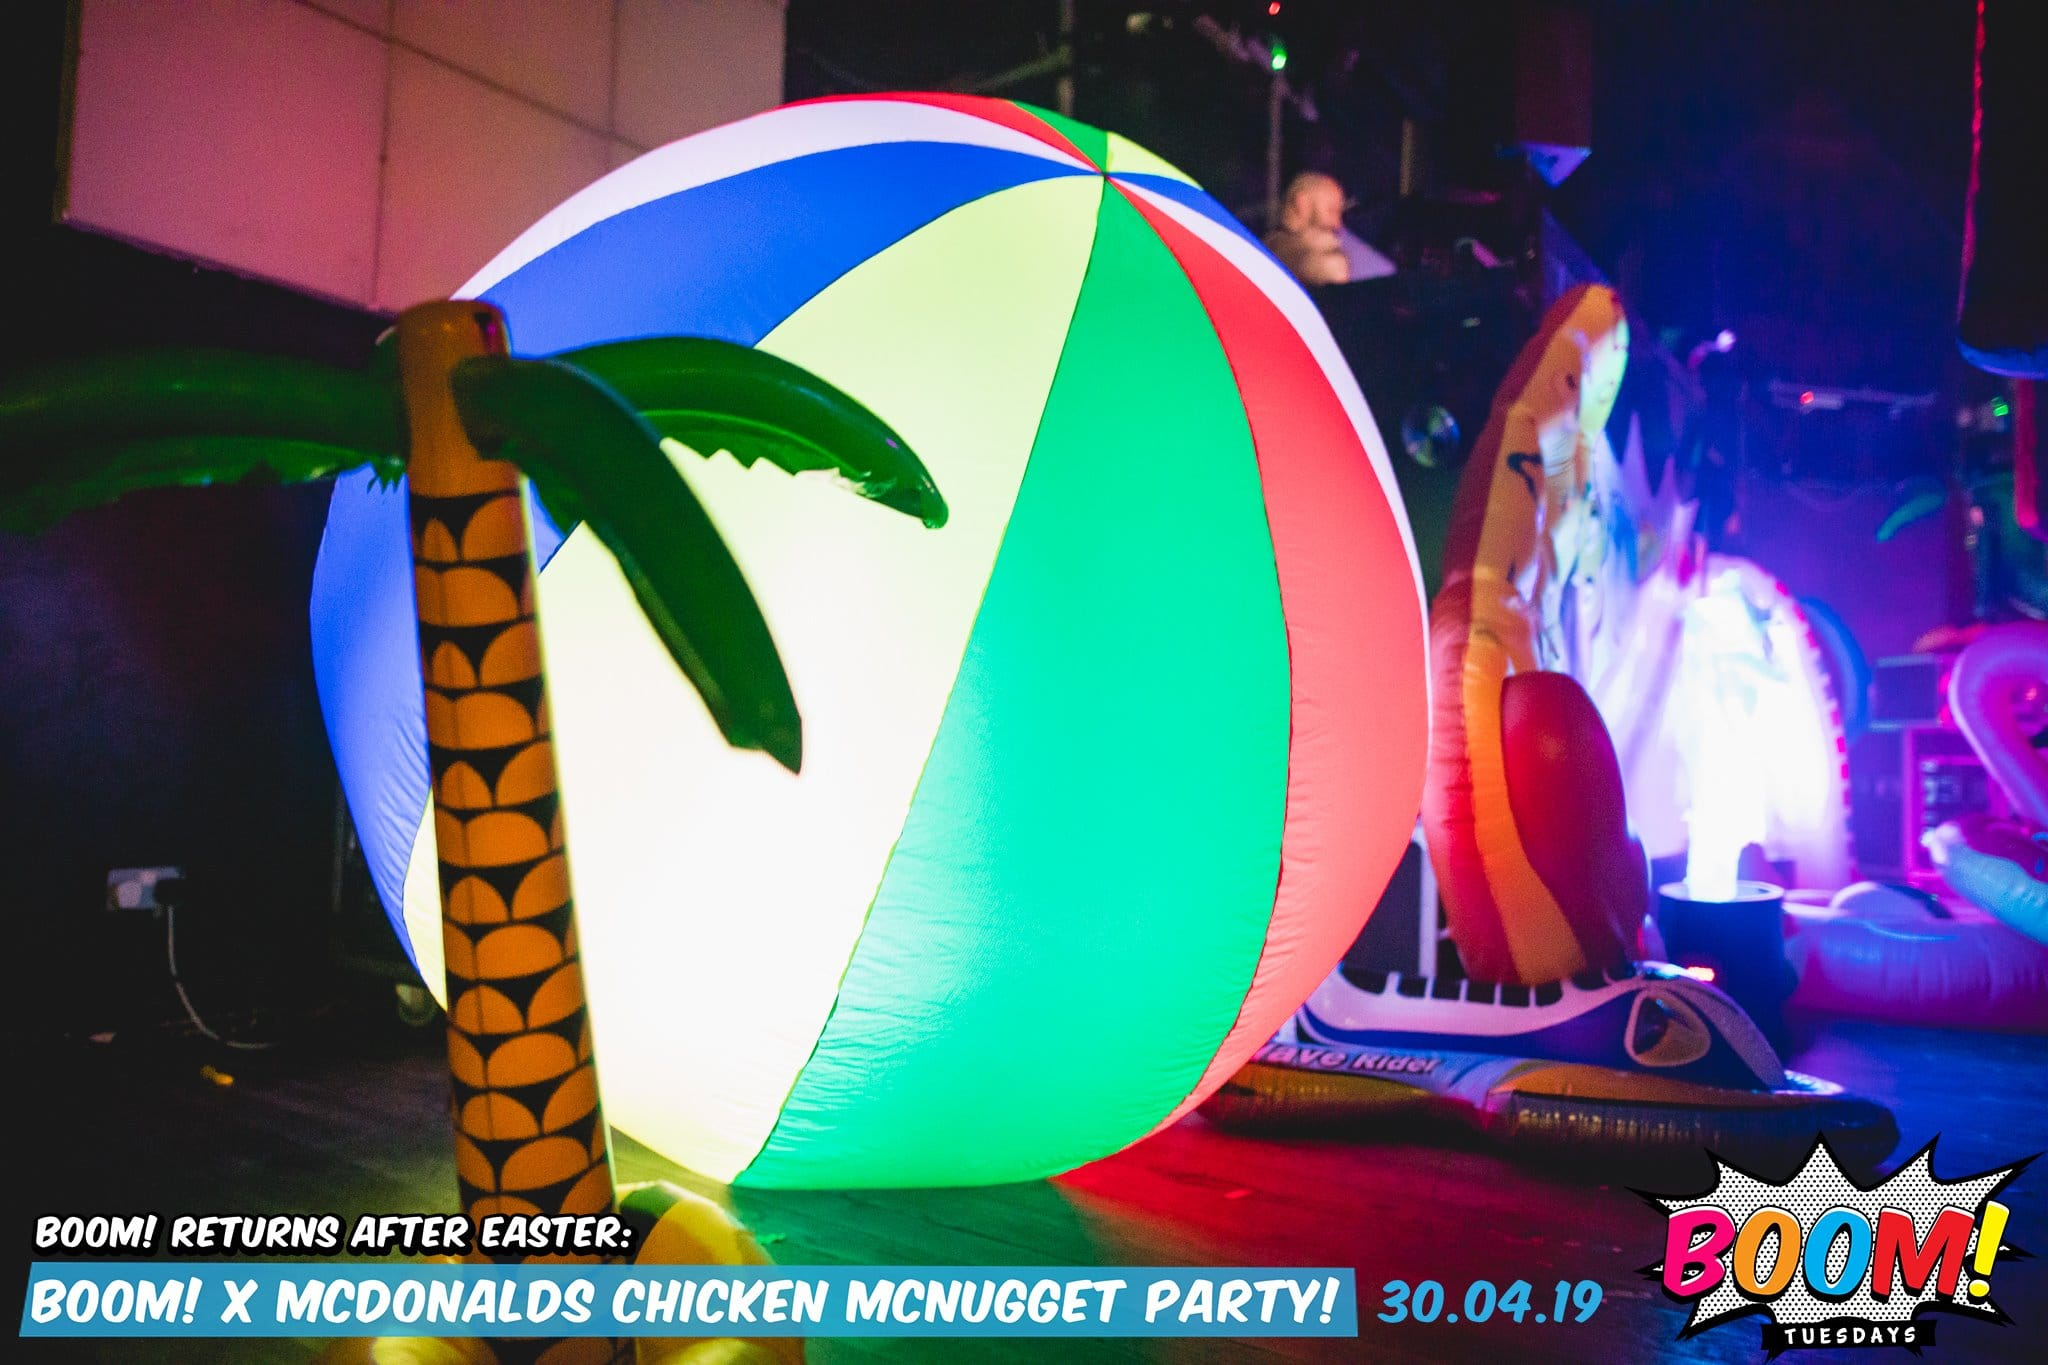 beach party, beach theme, summer party, beach event, summer event, giant beach ball, beach inflatable, giant beach inflatables, beach theme, beach party theme, beach party gloucestershire, beach inflatable cheltenham, event hire gloucestershire, beach hire gloucestershire.